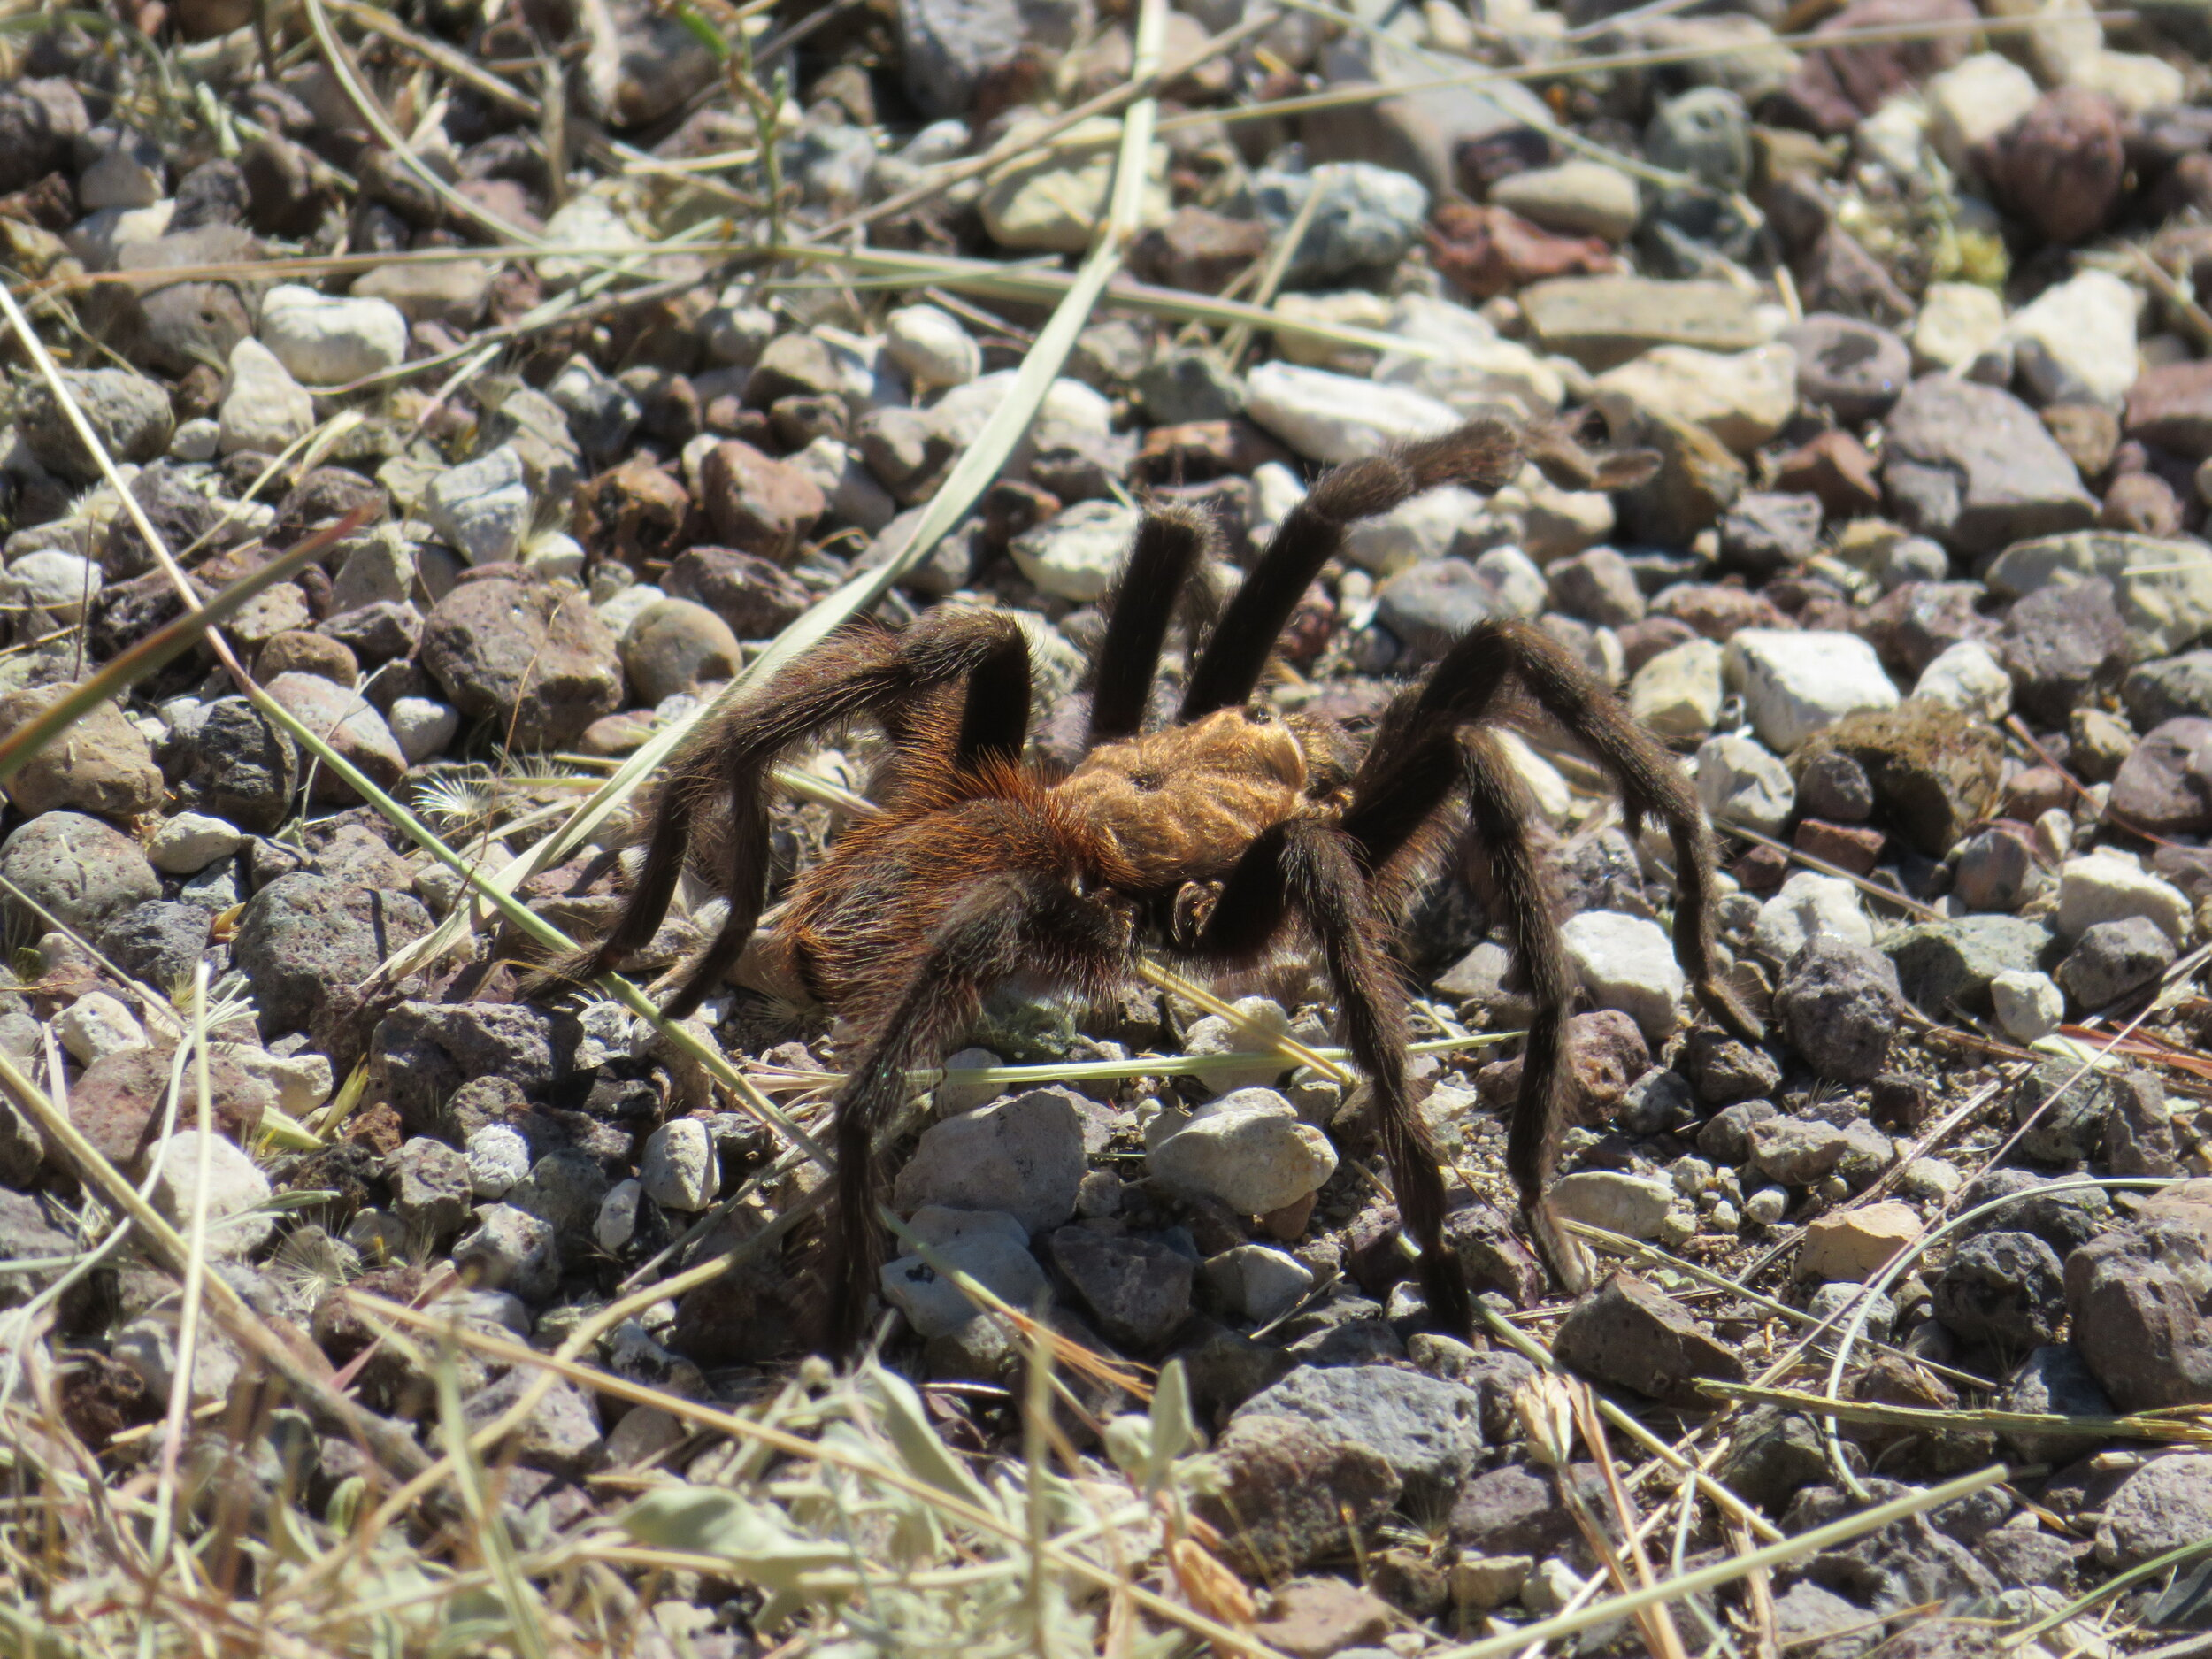 Why did the tarantula cross the road? Obviously to give me goosebumps and a photo opp. By the way, there are several different varieties of tarantulas. This one is a Mexican blonde … I kid you not.